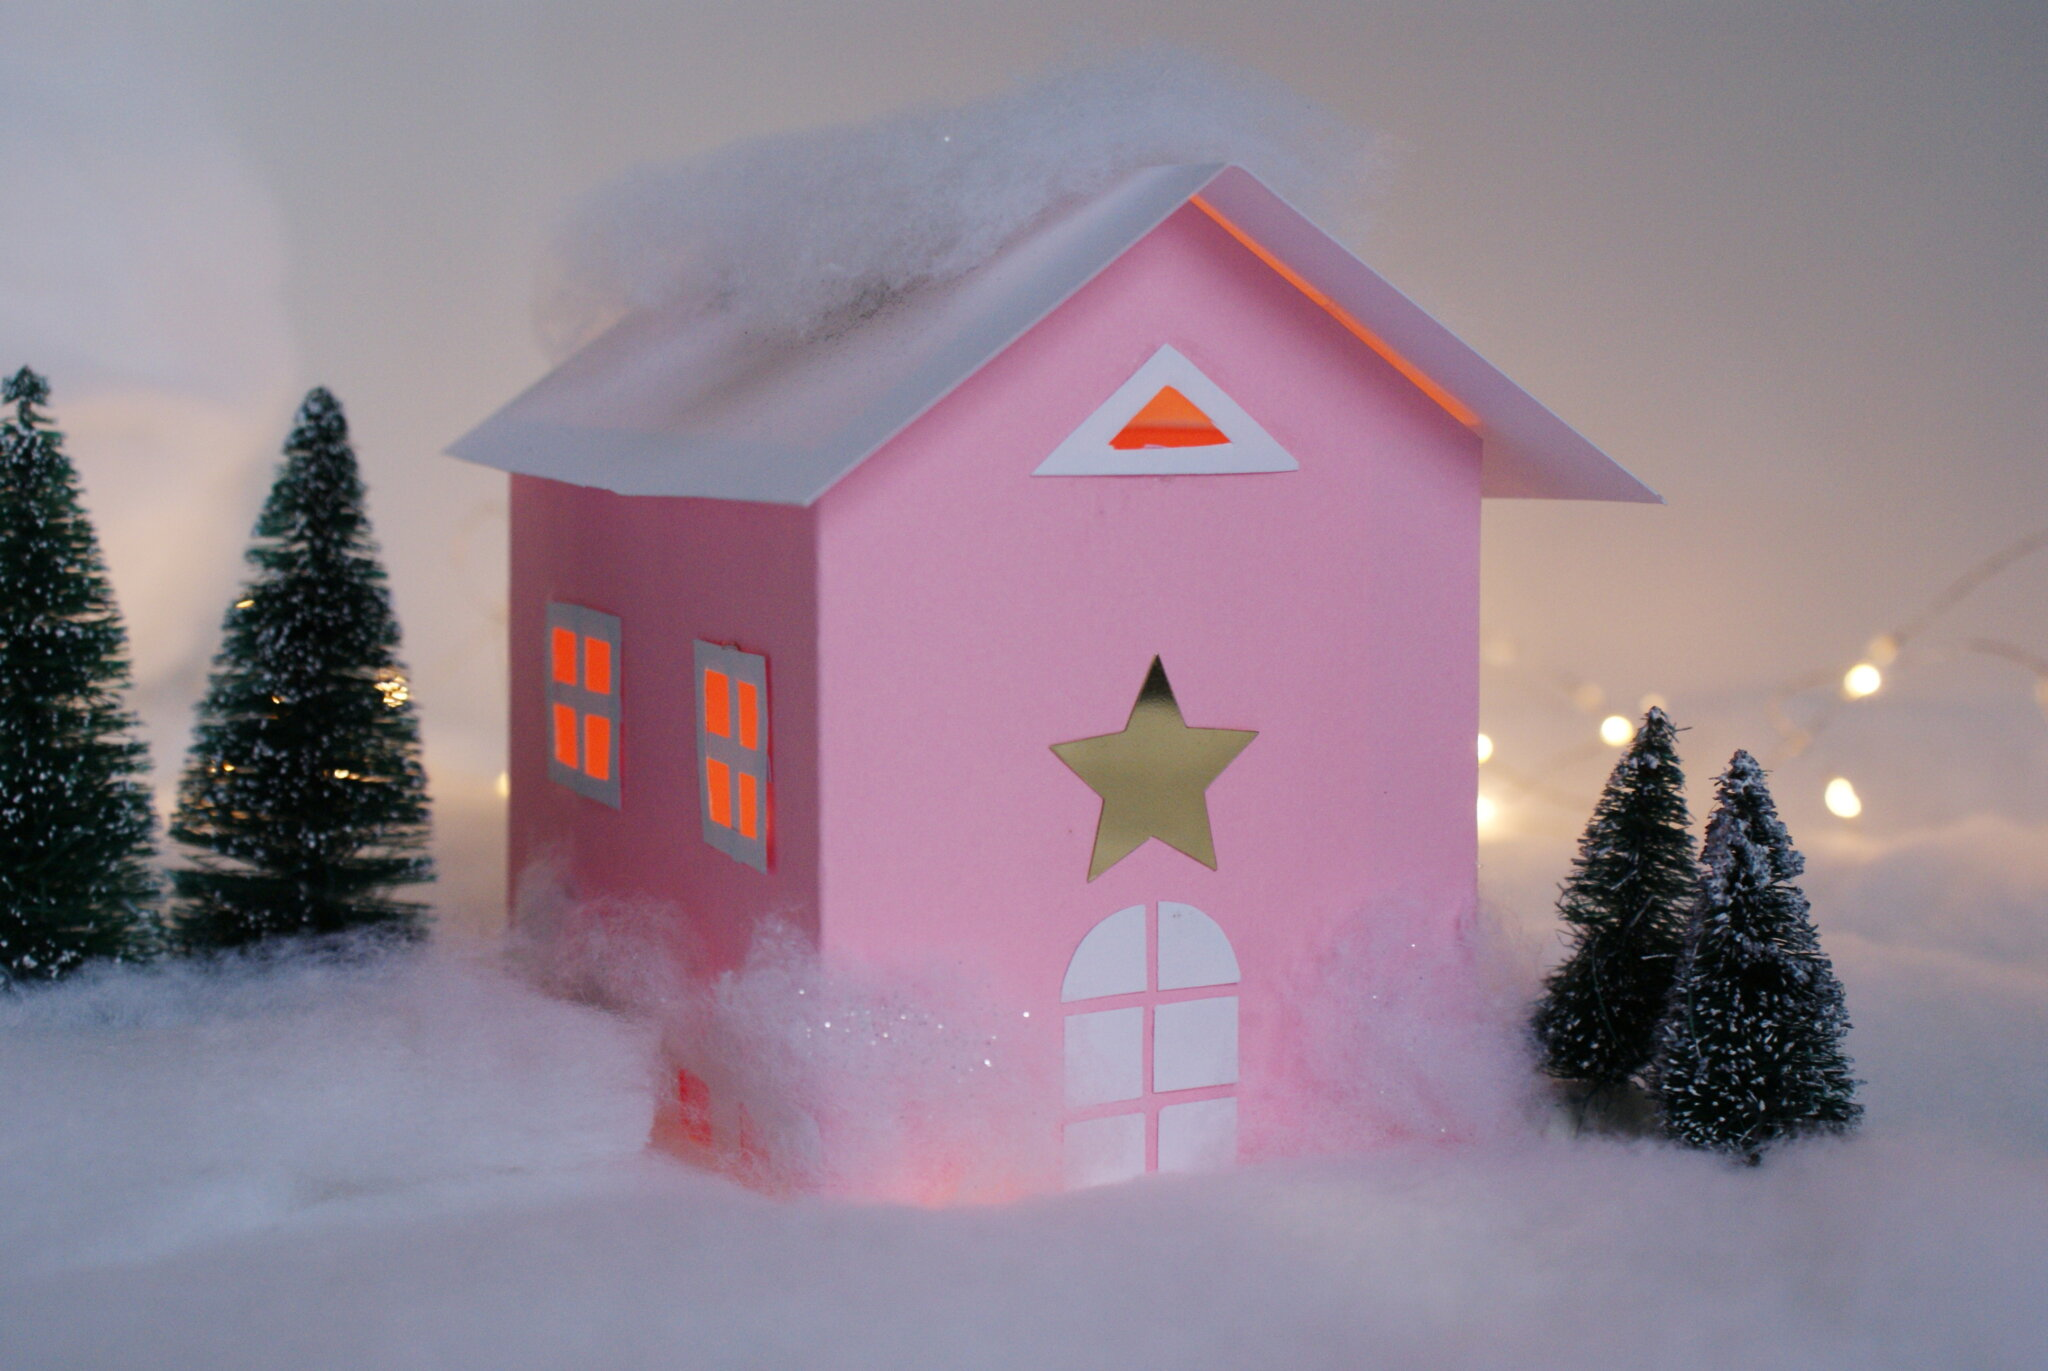 diy paper house christmas winter scene village craft idea decor home easy tutorial glitter fairy best